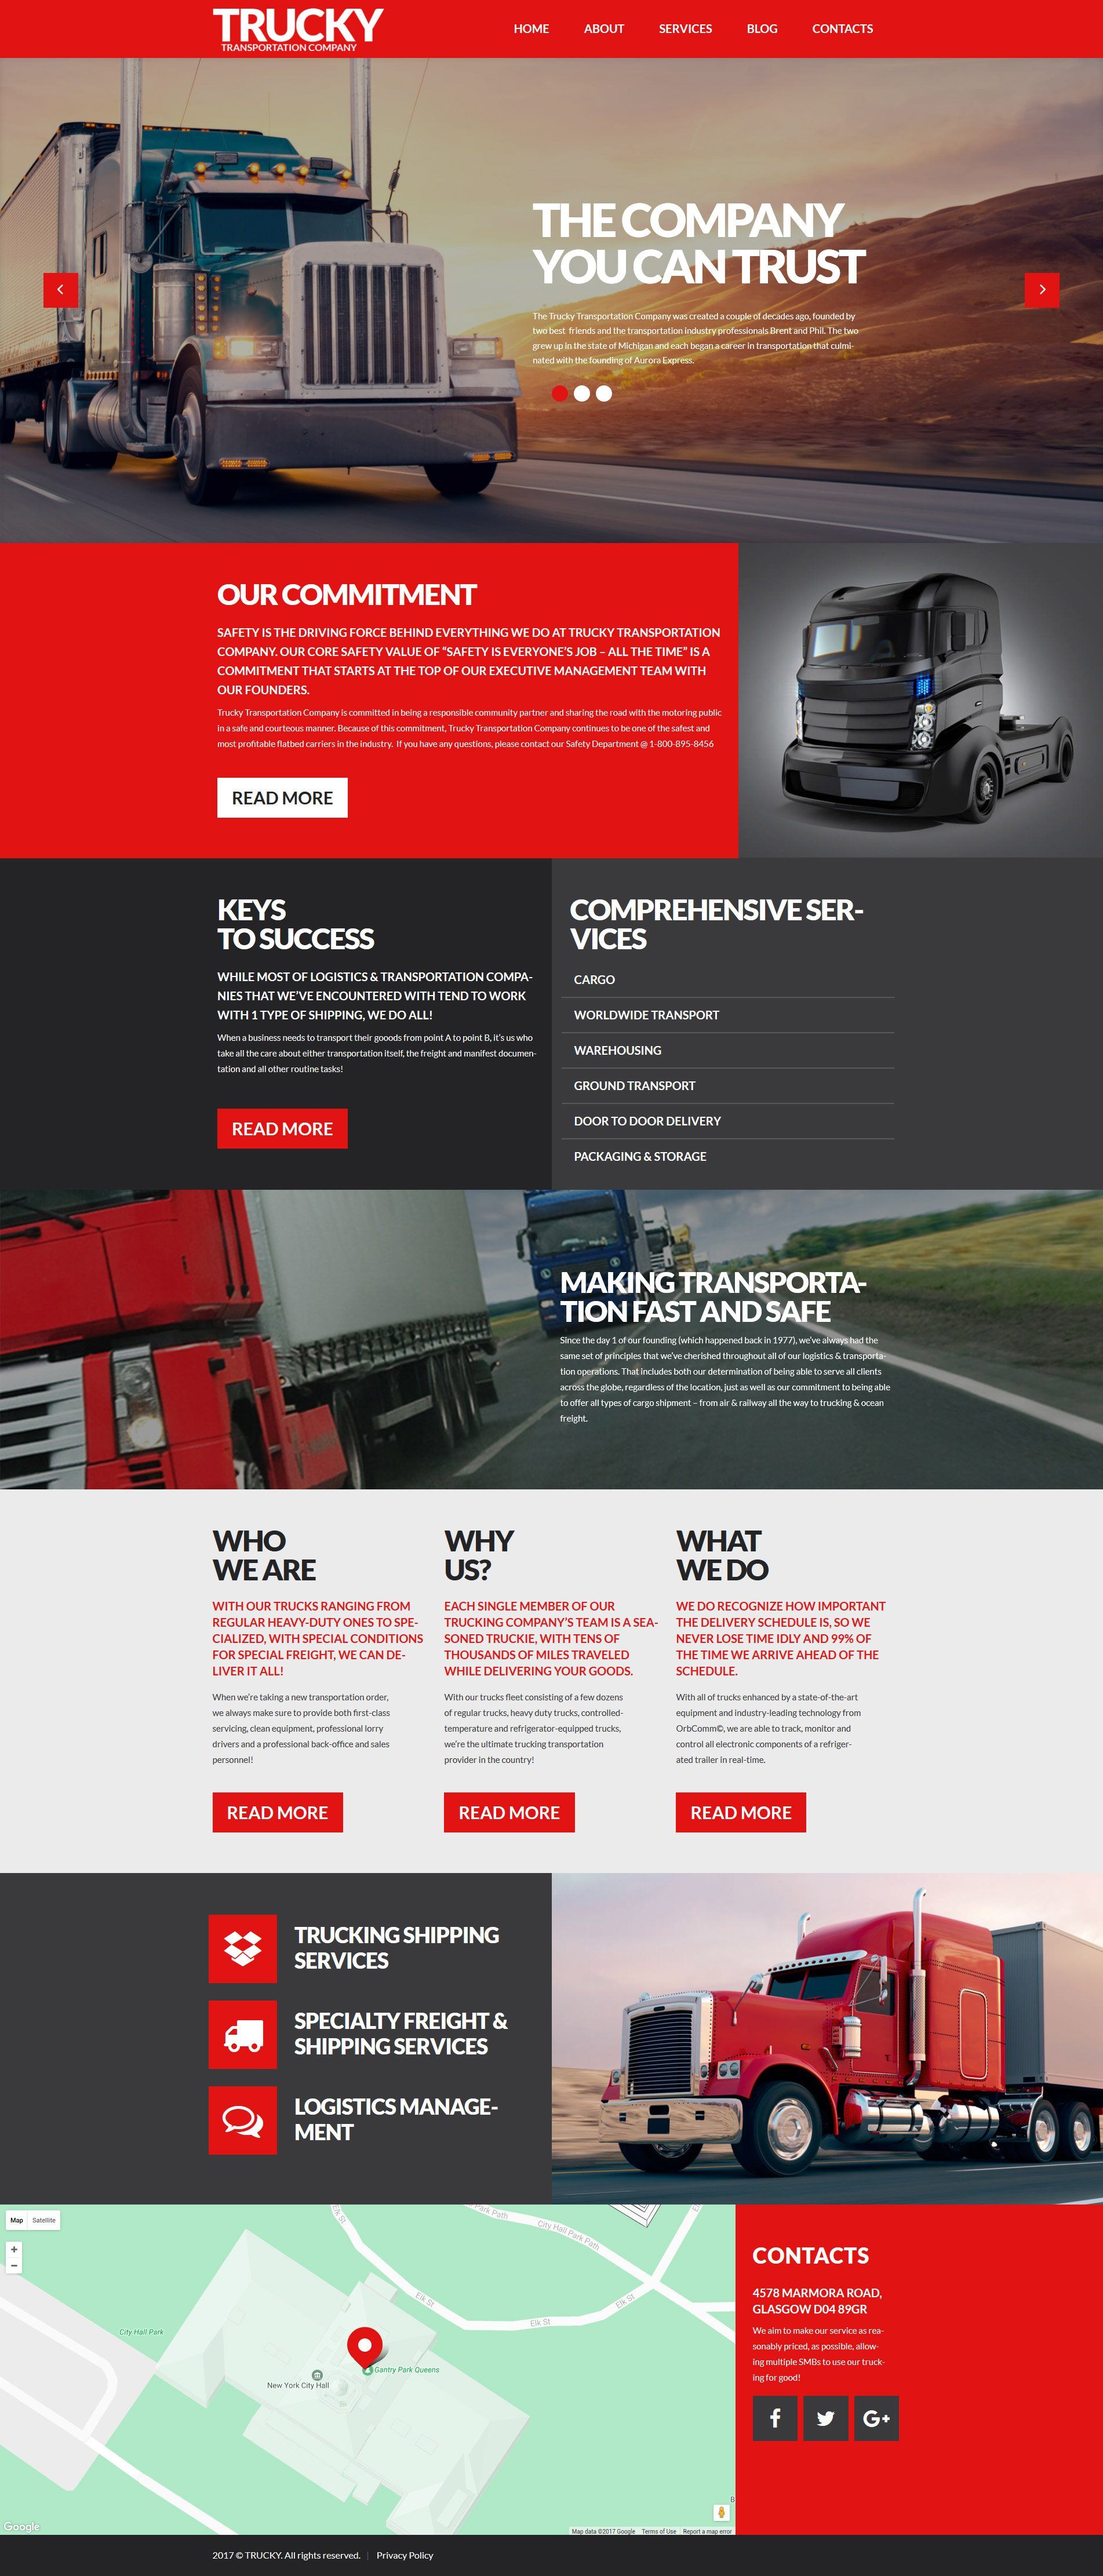 The Trucky Transportation WordPress Design 53388, one of the best WordPress themes of its kind (transportation, most popular), also known as trucky transportation WordPress template, transport WordPress template, fast WordPress template, reliability WordPress template, safety WordPress template, express WordPress template, exportation WordPress template, trucking WordPress template, delivery WordPress template, work WordPress template, team WordPress template, profile WordPress template, support WordPress template, customer WordPress template, clients solutions WordPress template, cars WordPress template, cargo WordPress template, services WordPress template, shipment WordPress template, rates WordPress template, prices WordPress template, offer WordPress template, standards WordPress template, vehicle WordPress template, destination WordPress template, trucking WordPress template, sea WordPress template, air and related with trucky transportation, transport, fast, reliability, safety, express, exportation, trucking, delivery, work, team, profile, support, customer, clients solutions, cars, cargo, services, shipment, rates, prices, offer, standards, vehicle, destination, trucking, sea, air, etc.